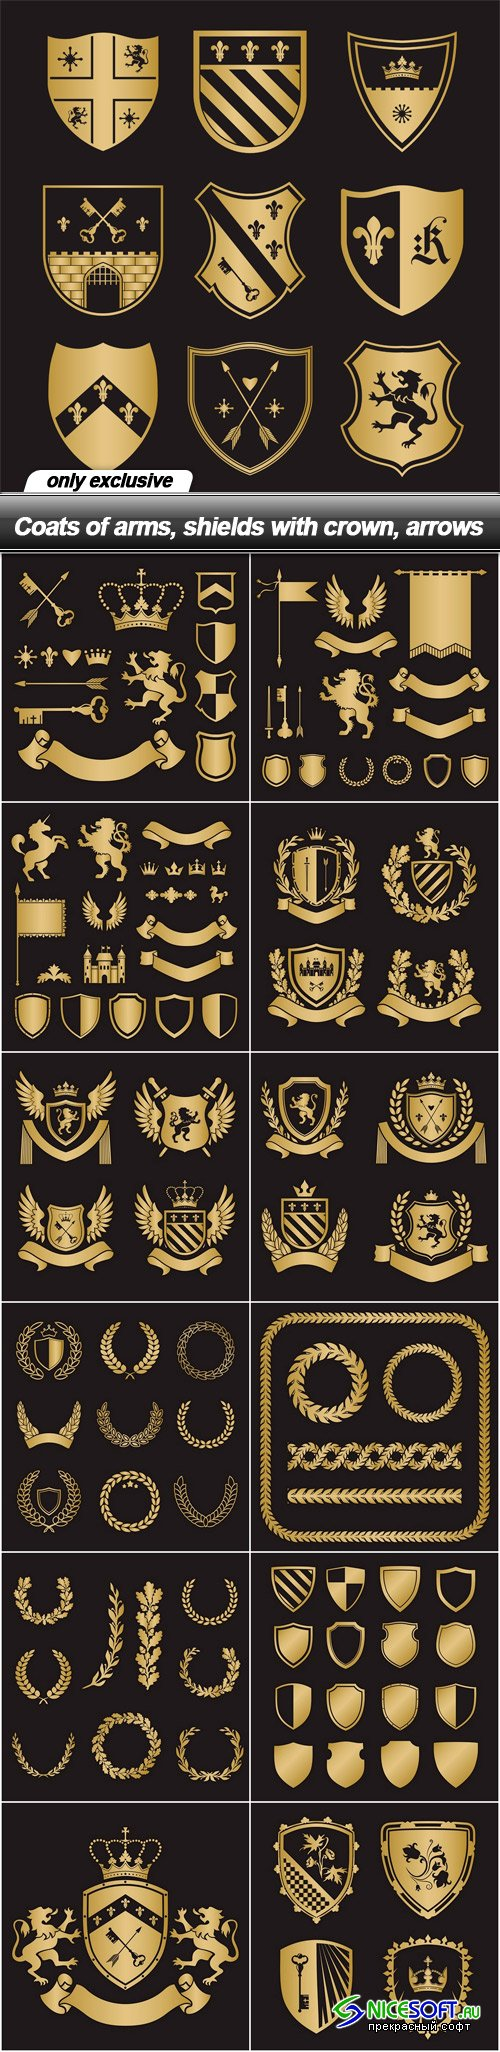 Coats of arms, shields with crown, arrows